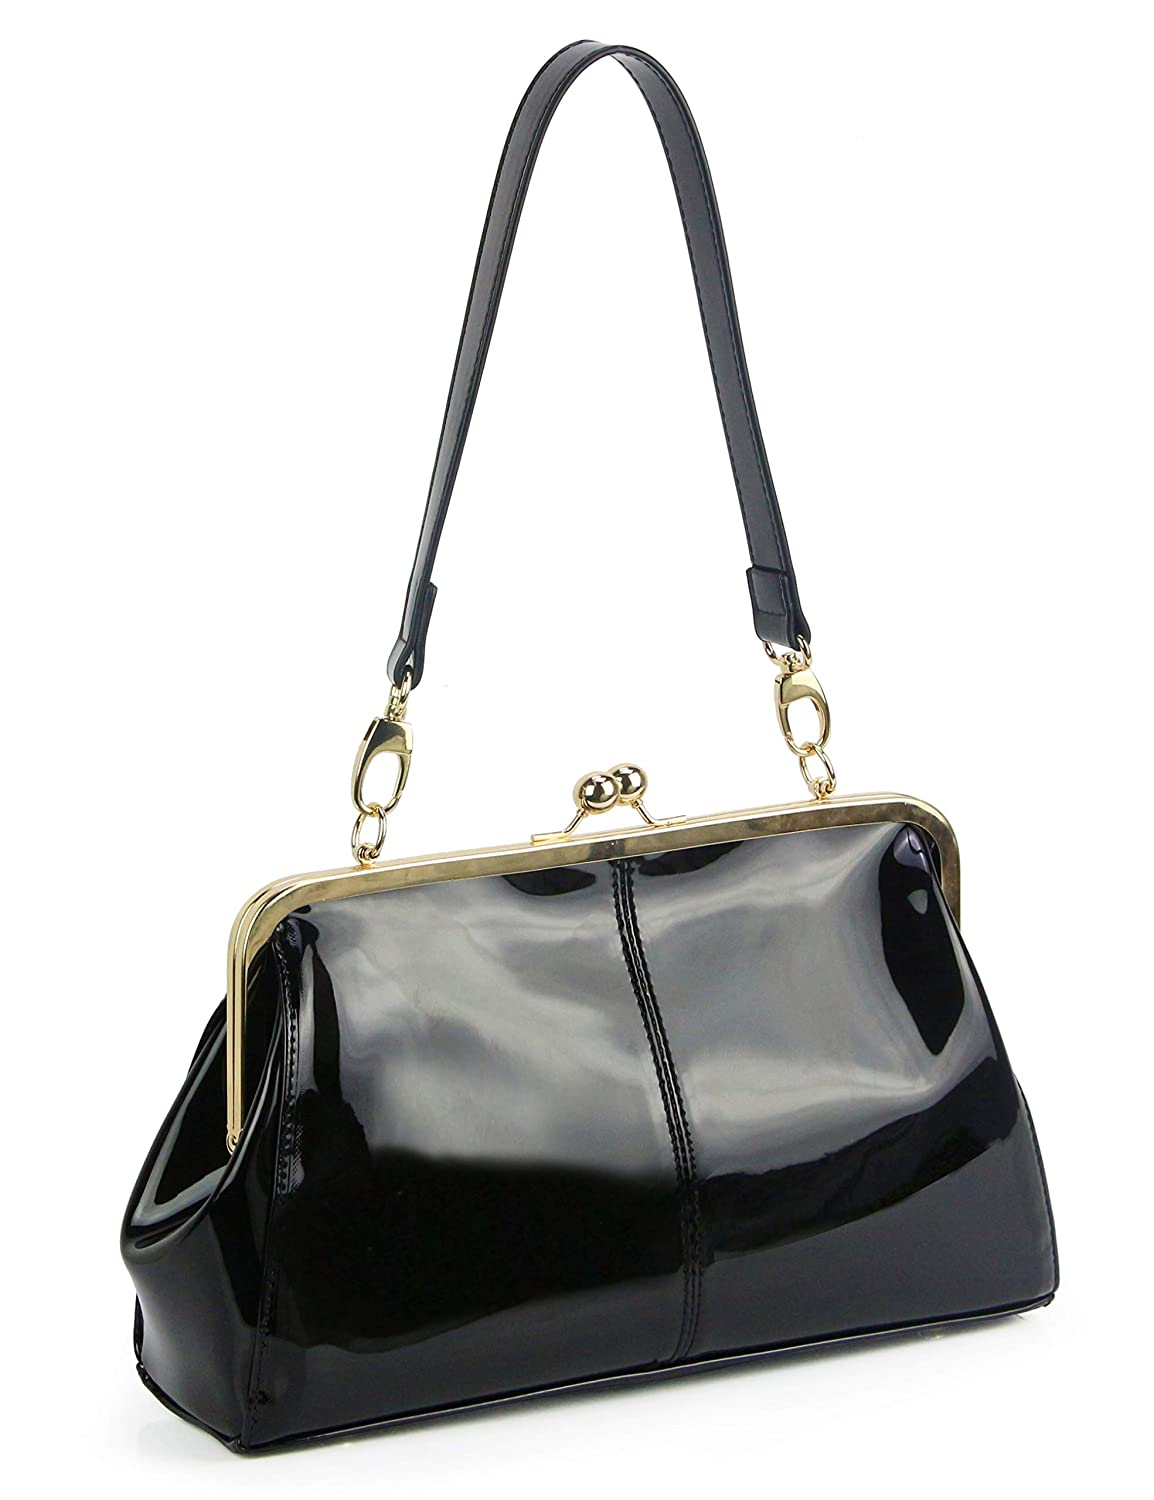 Vintage Handbags, Purses, Bags *New* Vintage Kiss Lock Handbags Shiny Patent Leather Evening Clutch Purse Tote Bags with Two Straps $25.50 AT vintagedancer.com